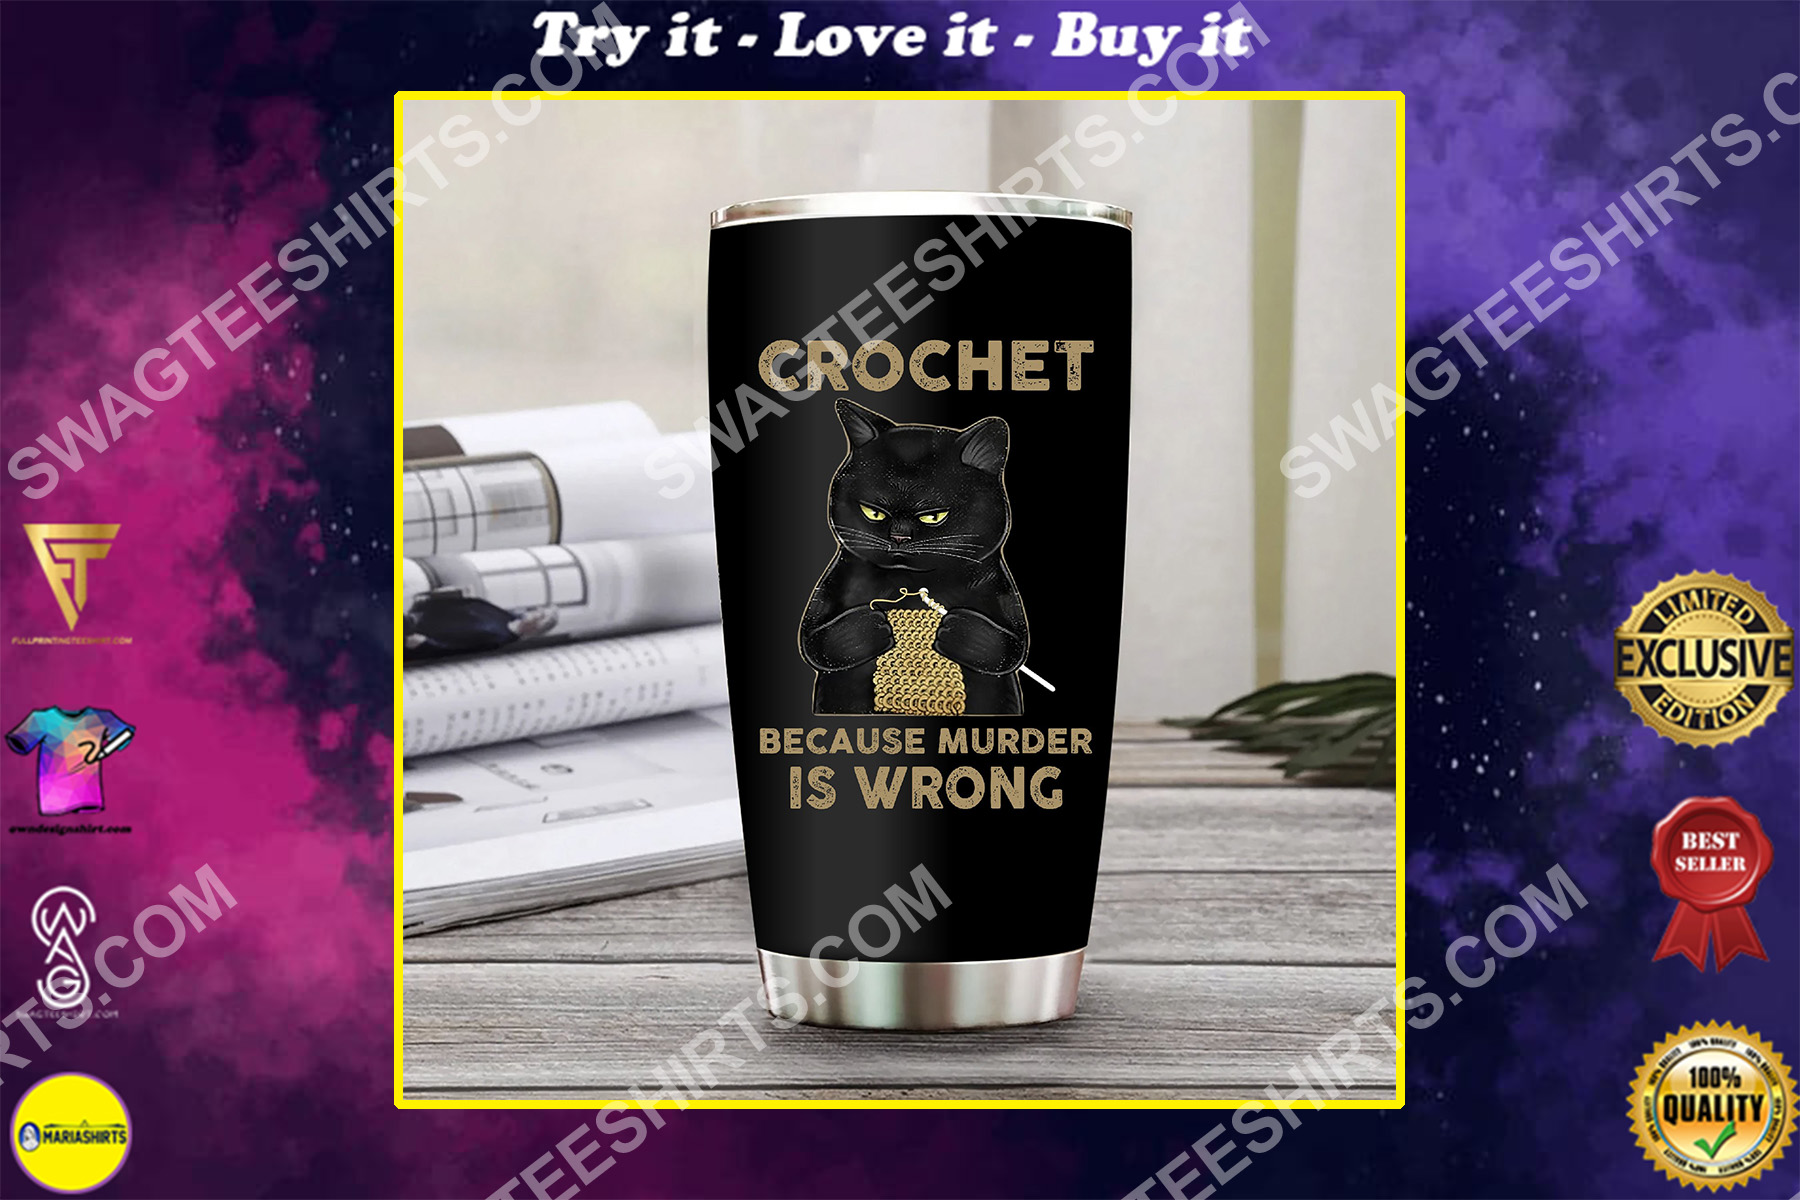 black cat crochet because murder is wrong all over printed stainless steel tumbler